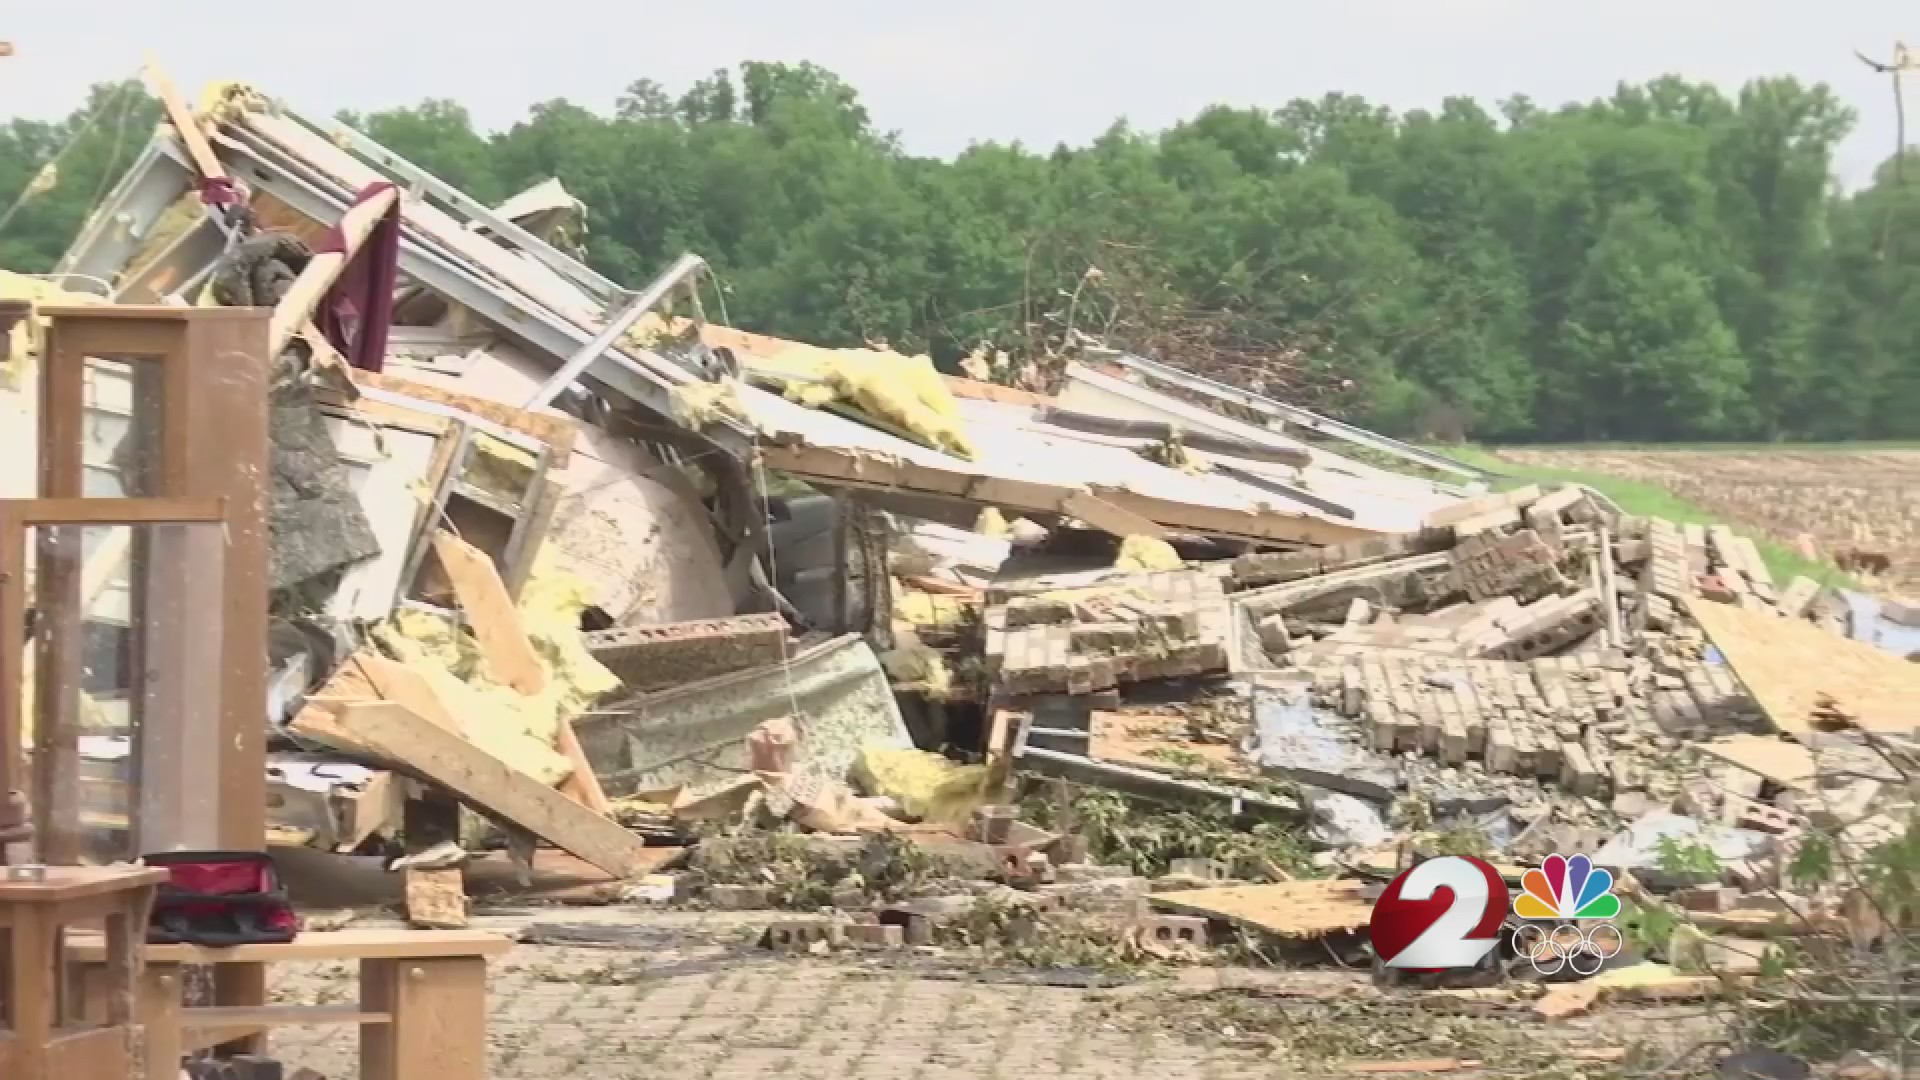 Displaced families make slow return to tornado-damaged neighborhoods